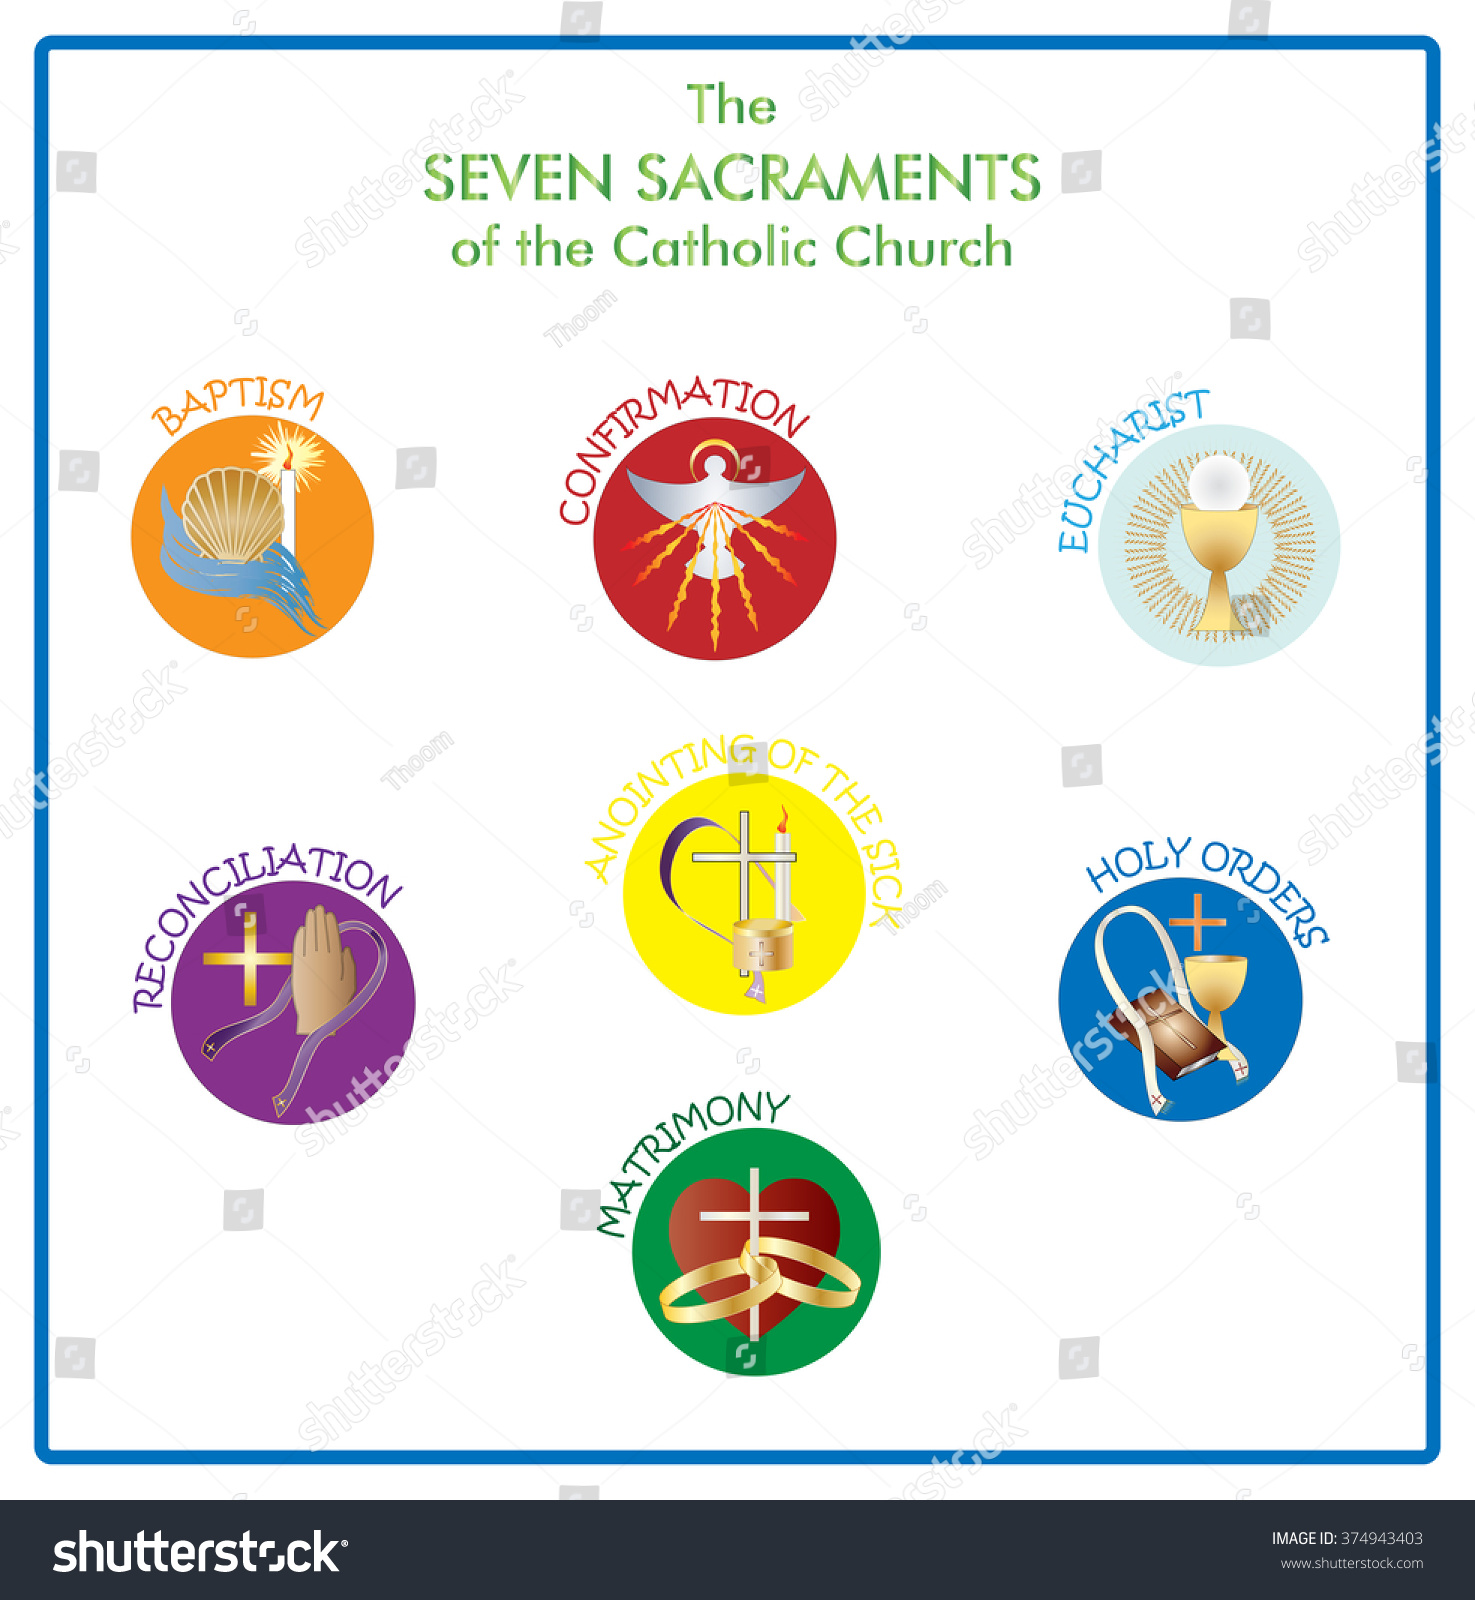 The Seven Sacraments And Their Symbols